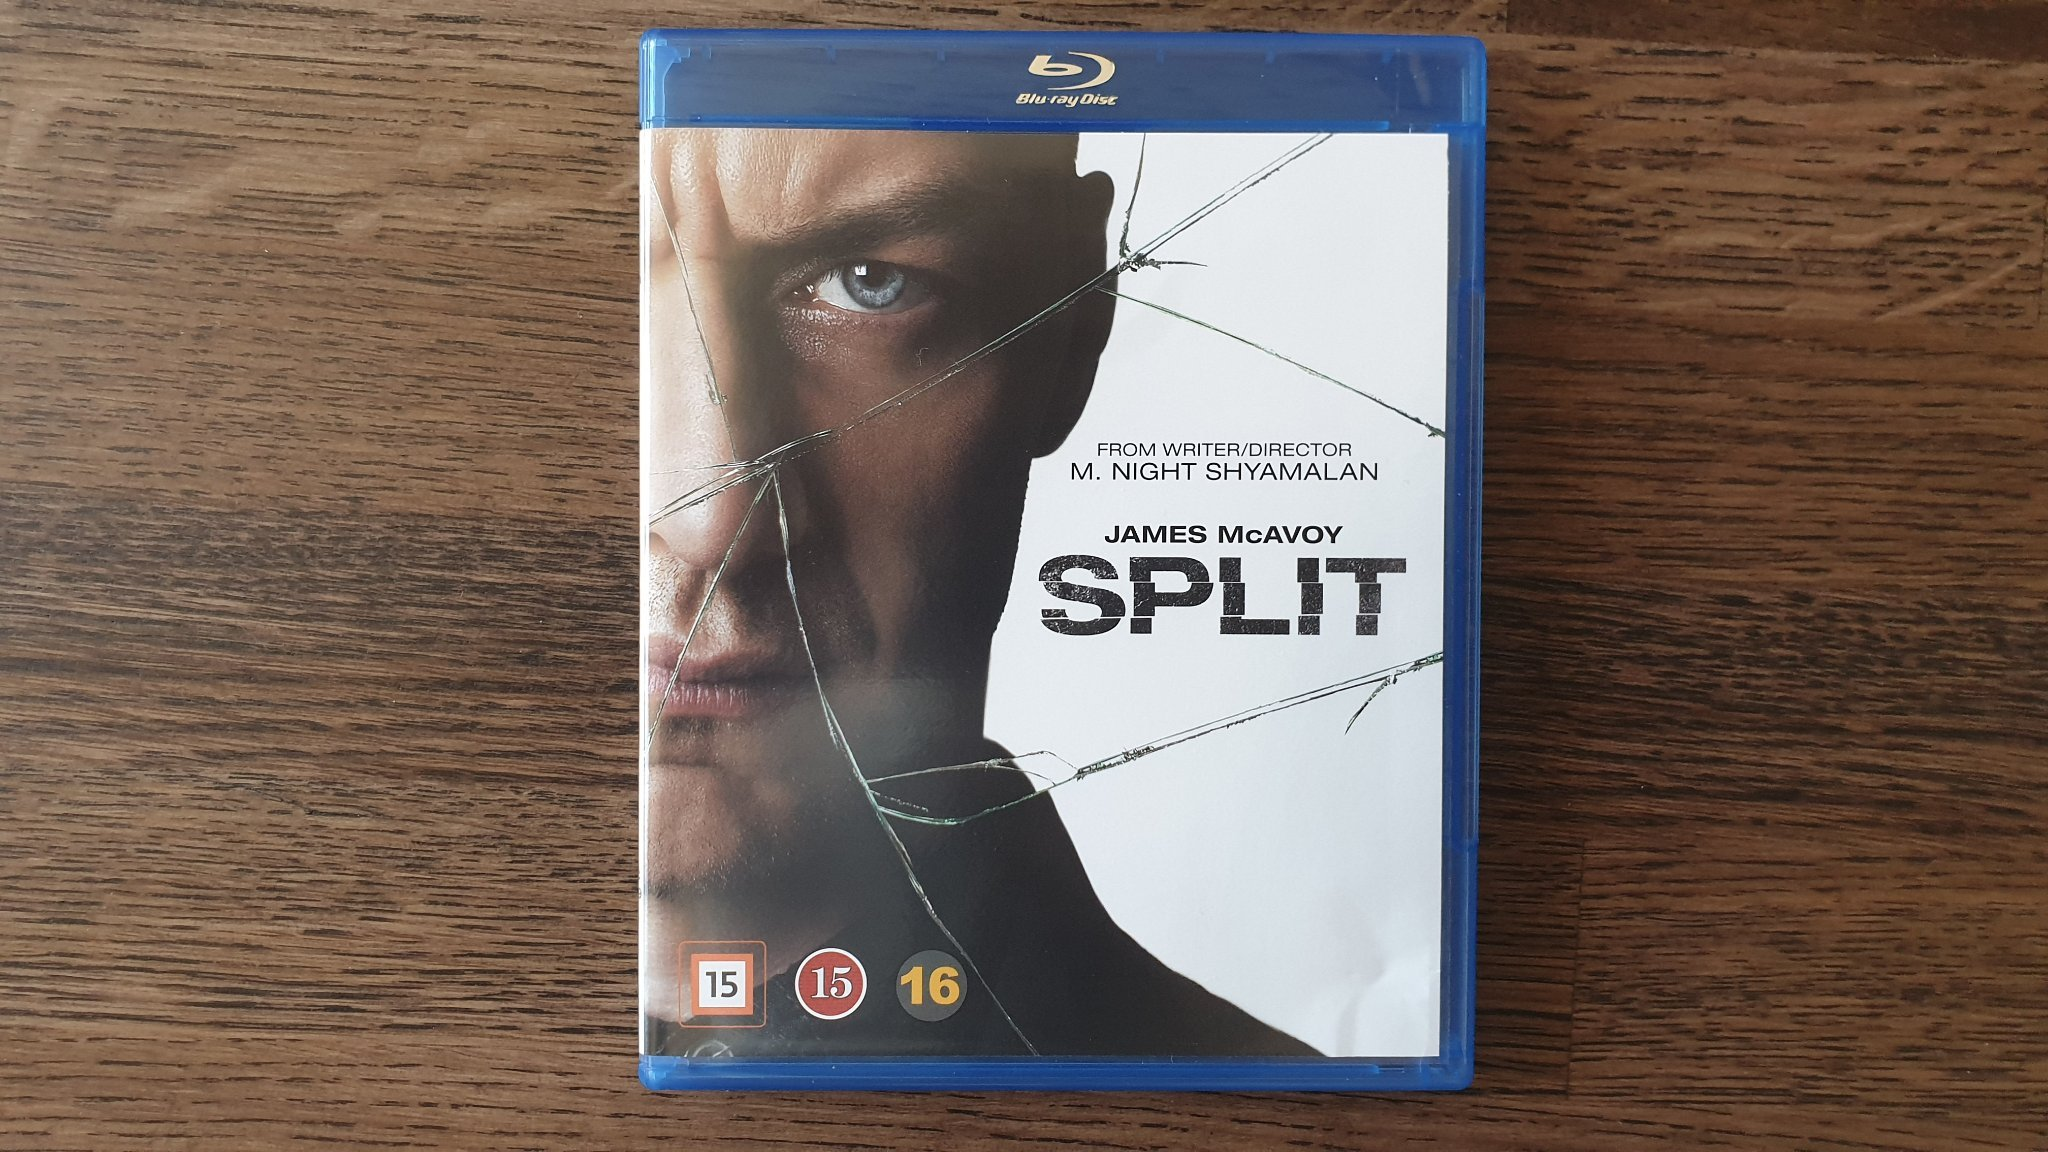 Split M Night Shyamalan James Mcavoy